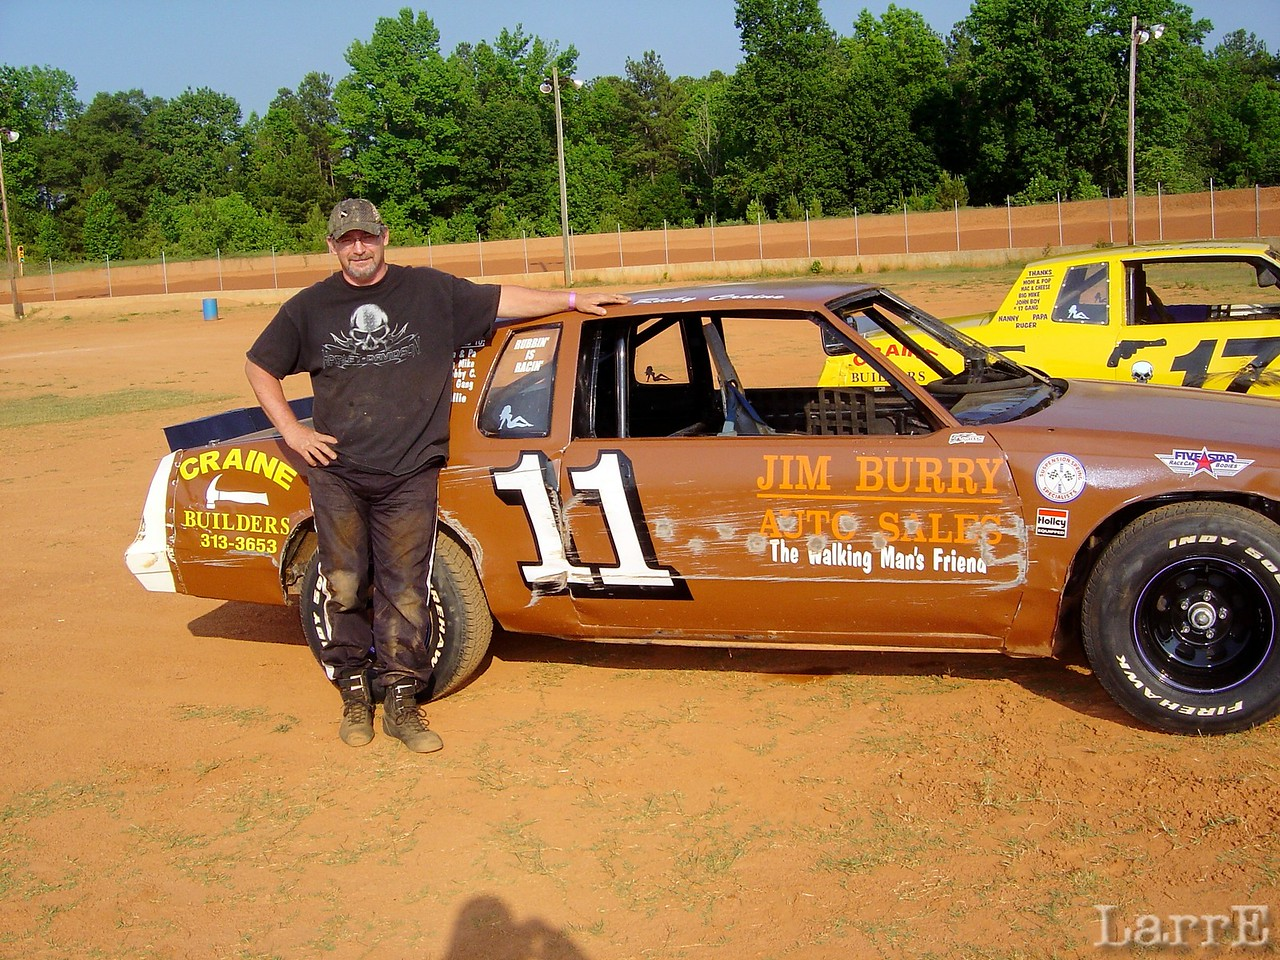 RICKY CRAINE and his #11 renegade car